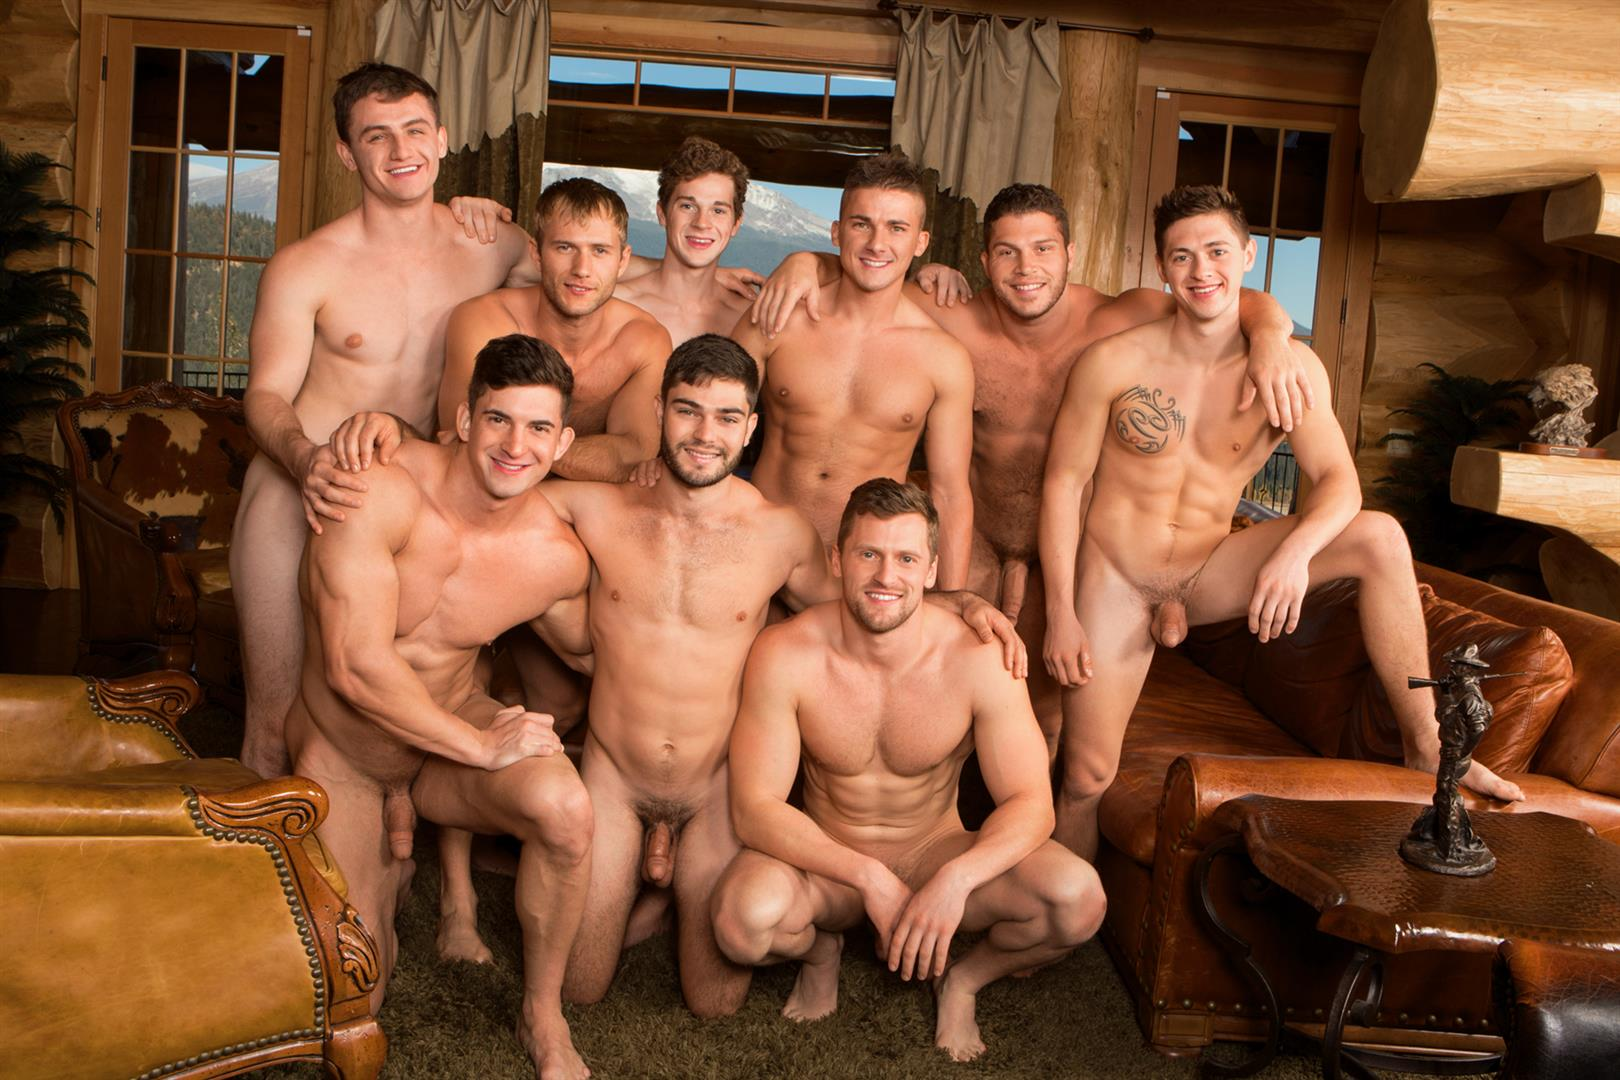 Sean-Cody-Winter-Getaway-Day-5-Big-Dick-Hunks-Fucking-Bareback-Amateur-Gay-Porn-16 Sean Cody Takes The Boys On A 8-Day Bareback Winter Getaway